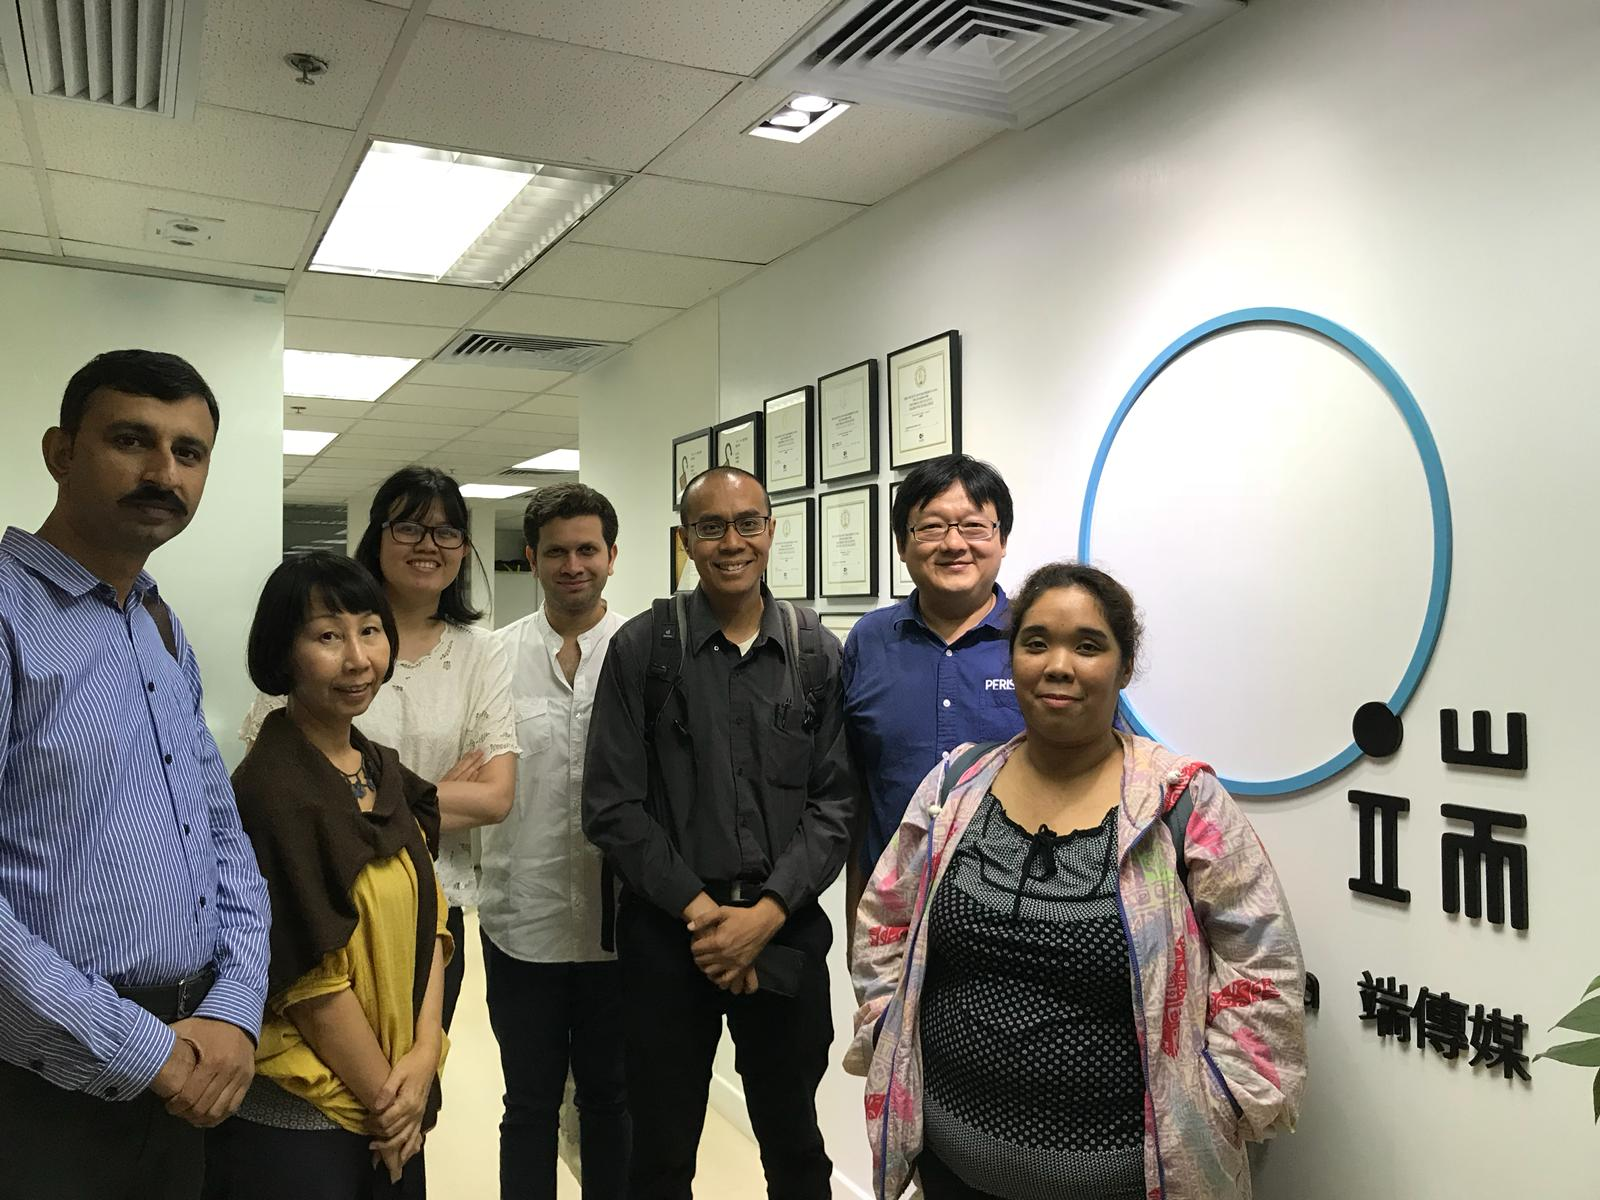 MEDIA VISIT. The author and the journalists during a visit to Initium media